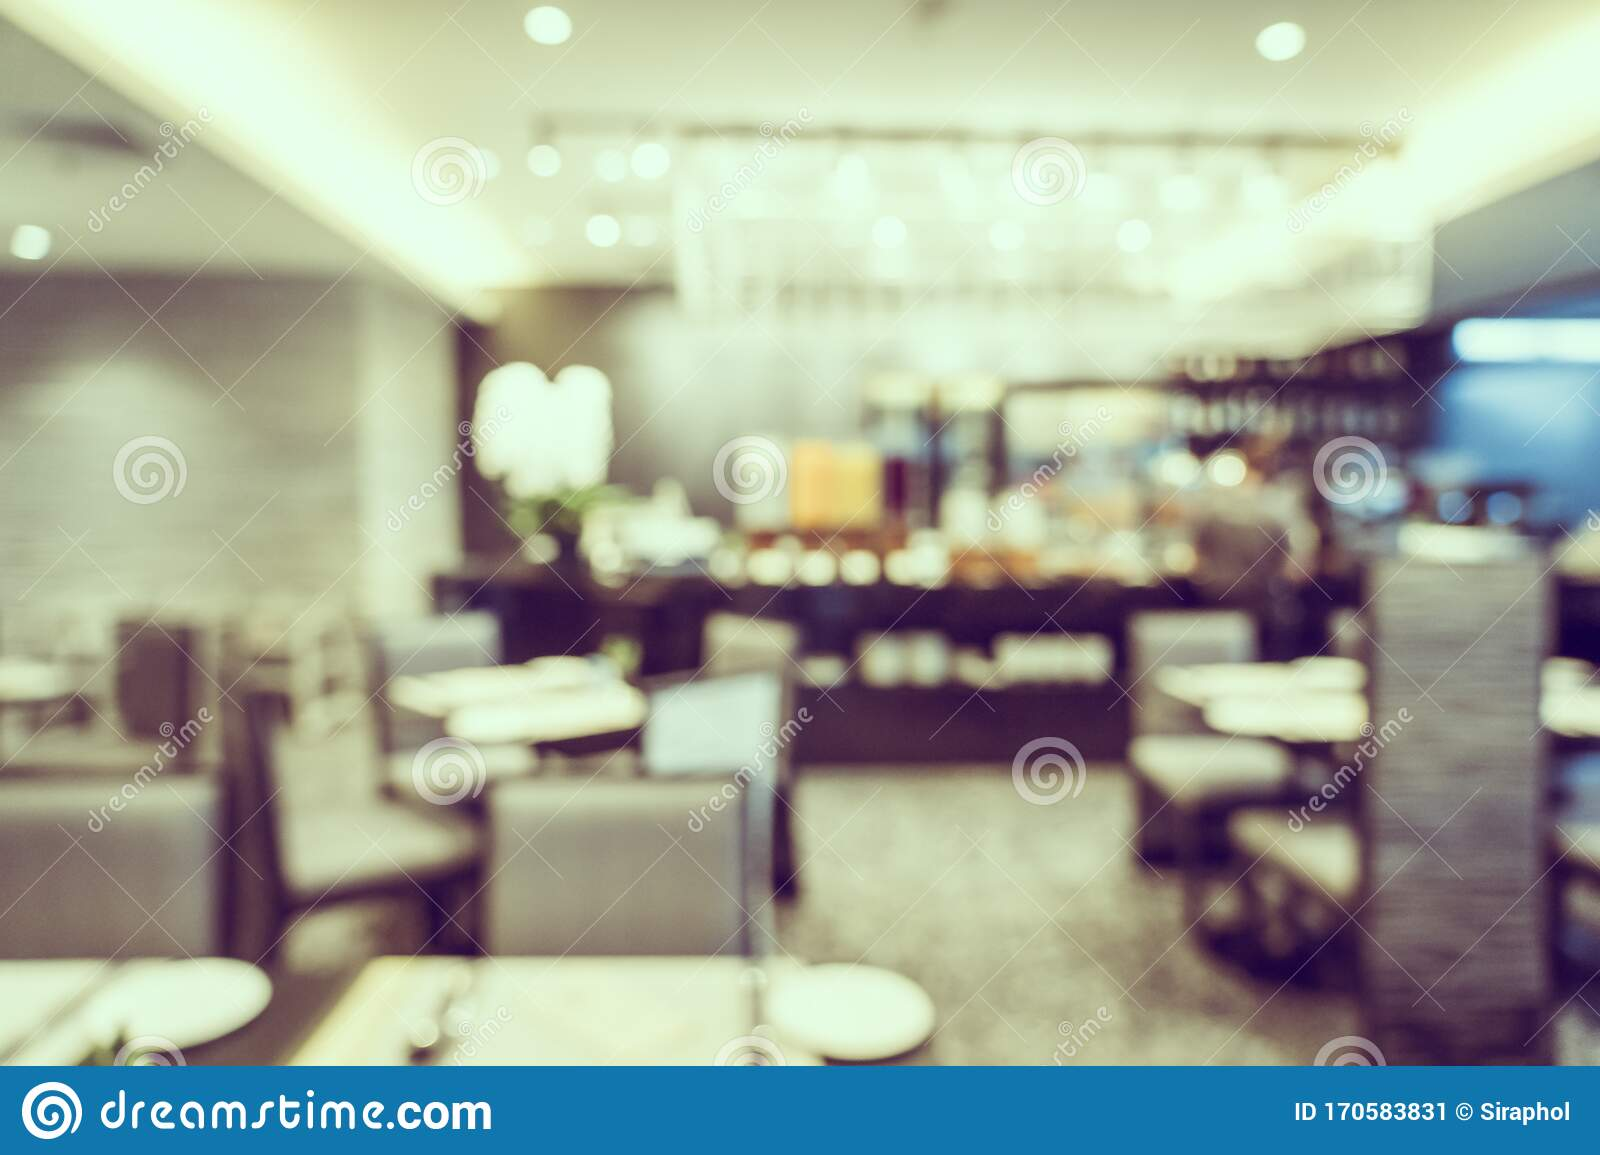 Abstract Blur Coffee Shop Cafe And Restaurant Interior For Background Stock Image Image Of Blur Retail 170583831